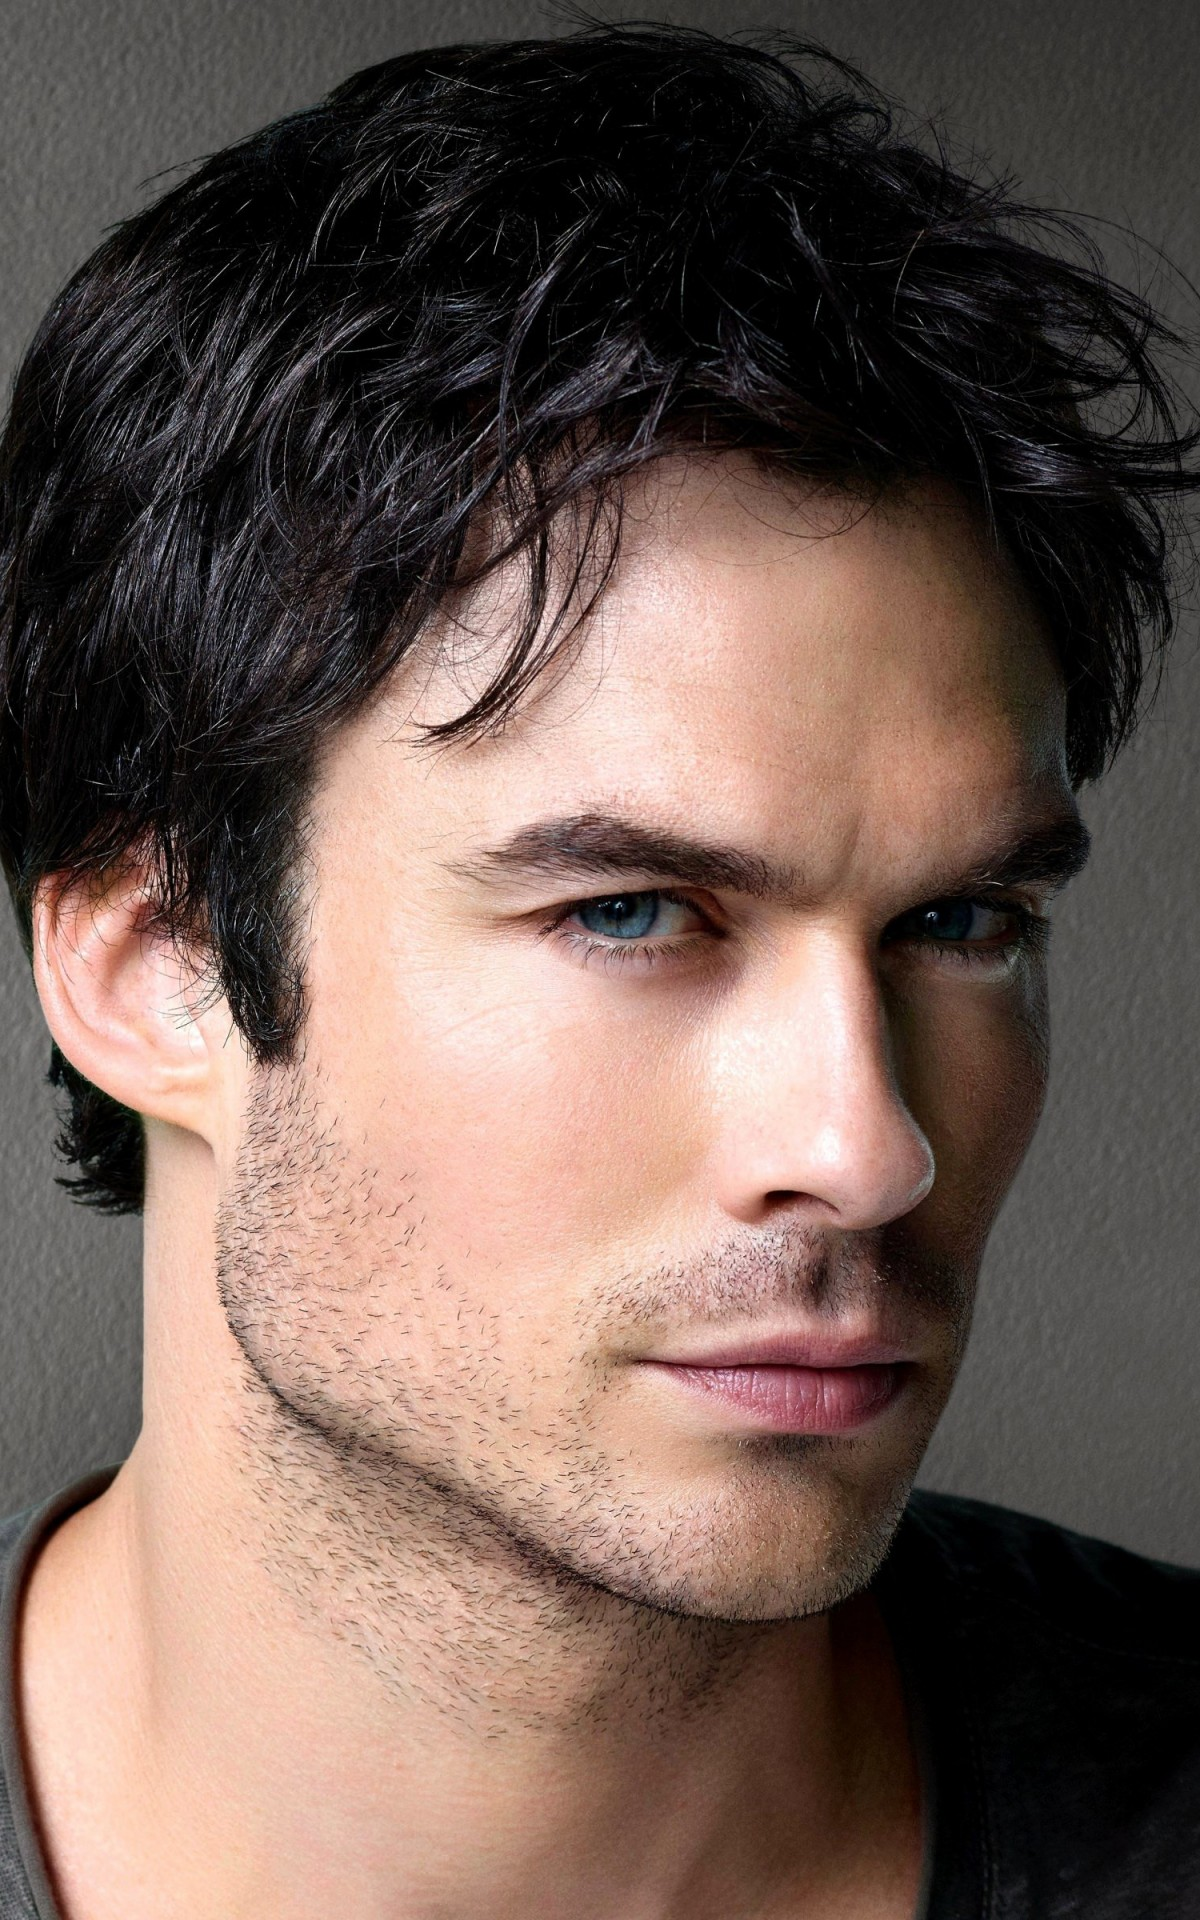 Ian Somerhalder Wallpaper for Amazon Kindle Fire HDX